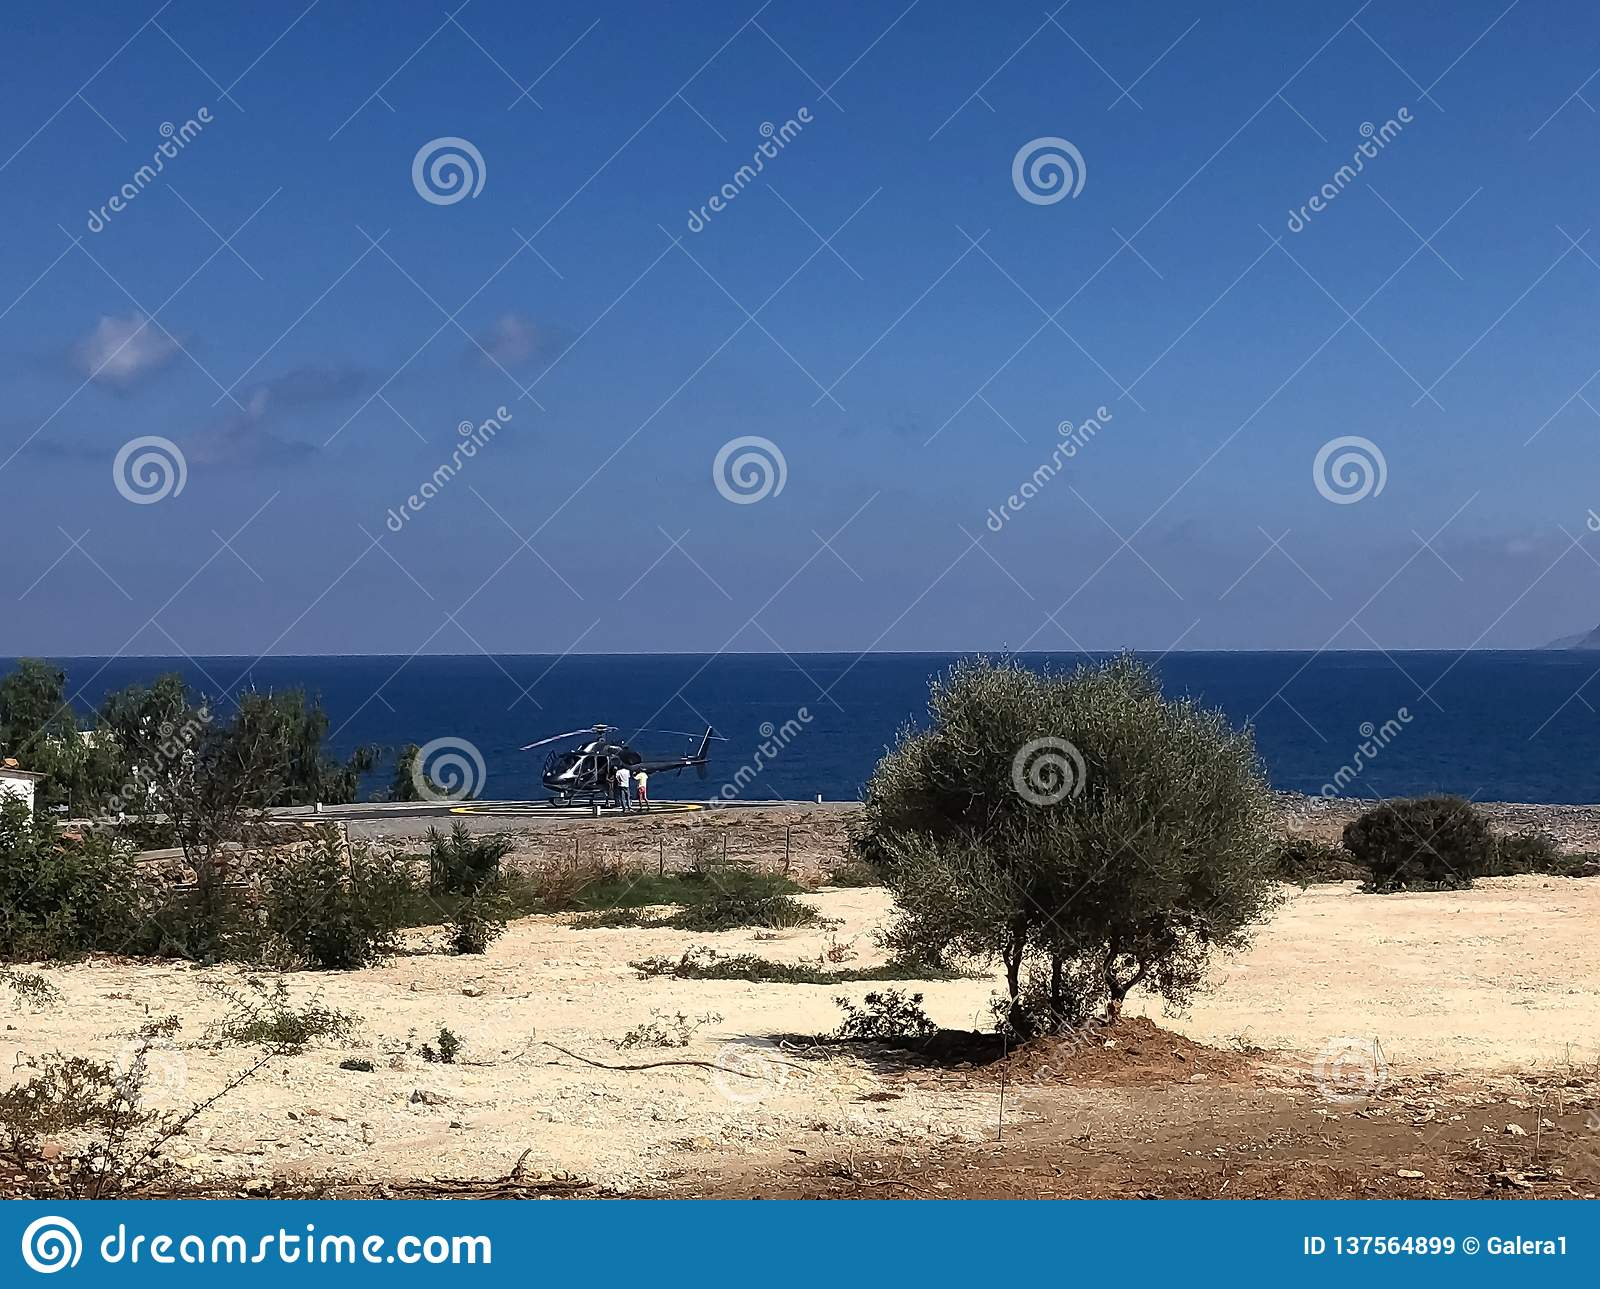 Sea view with bushes and a helicopter